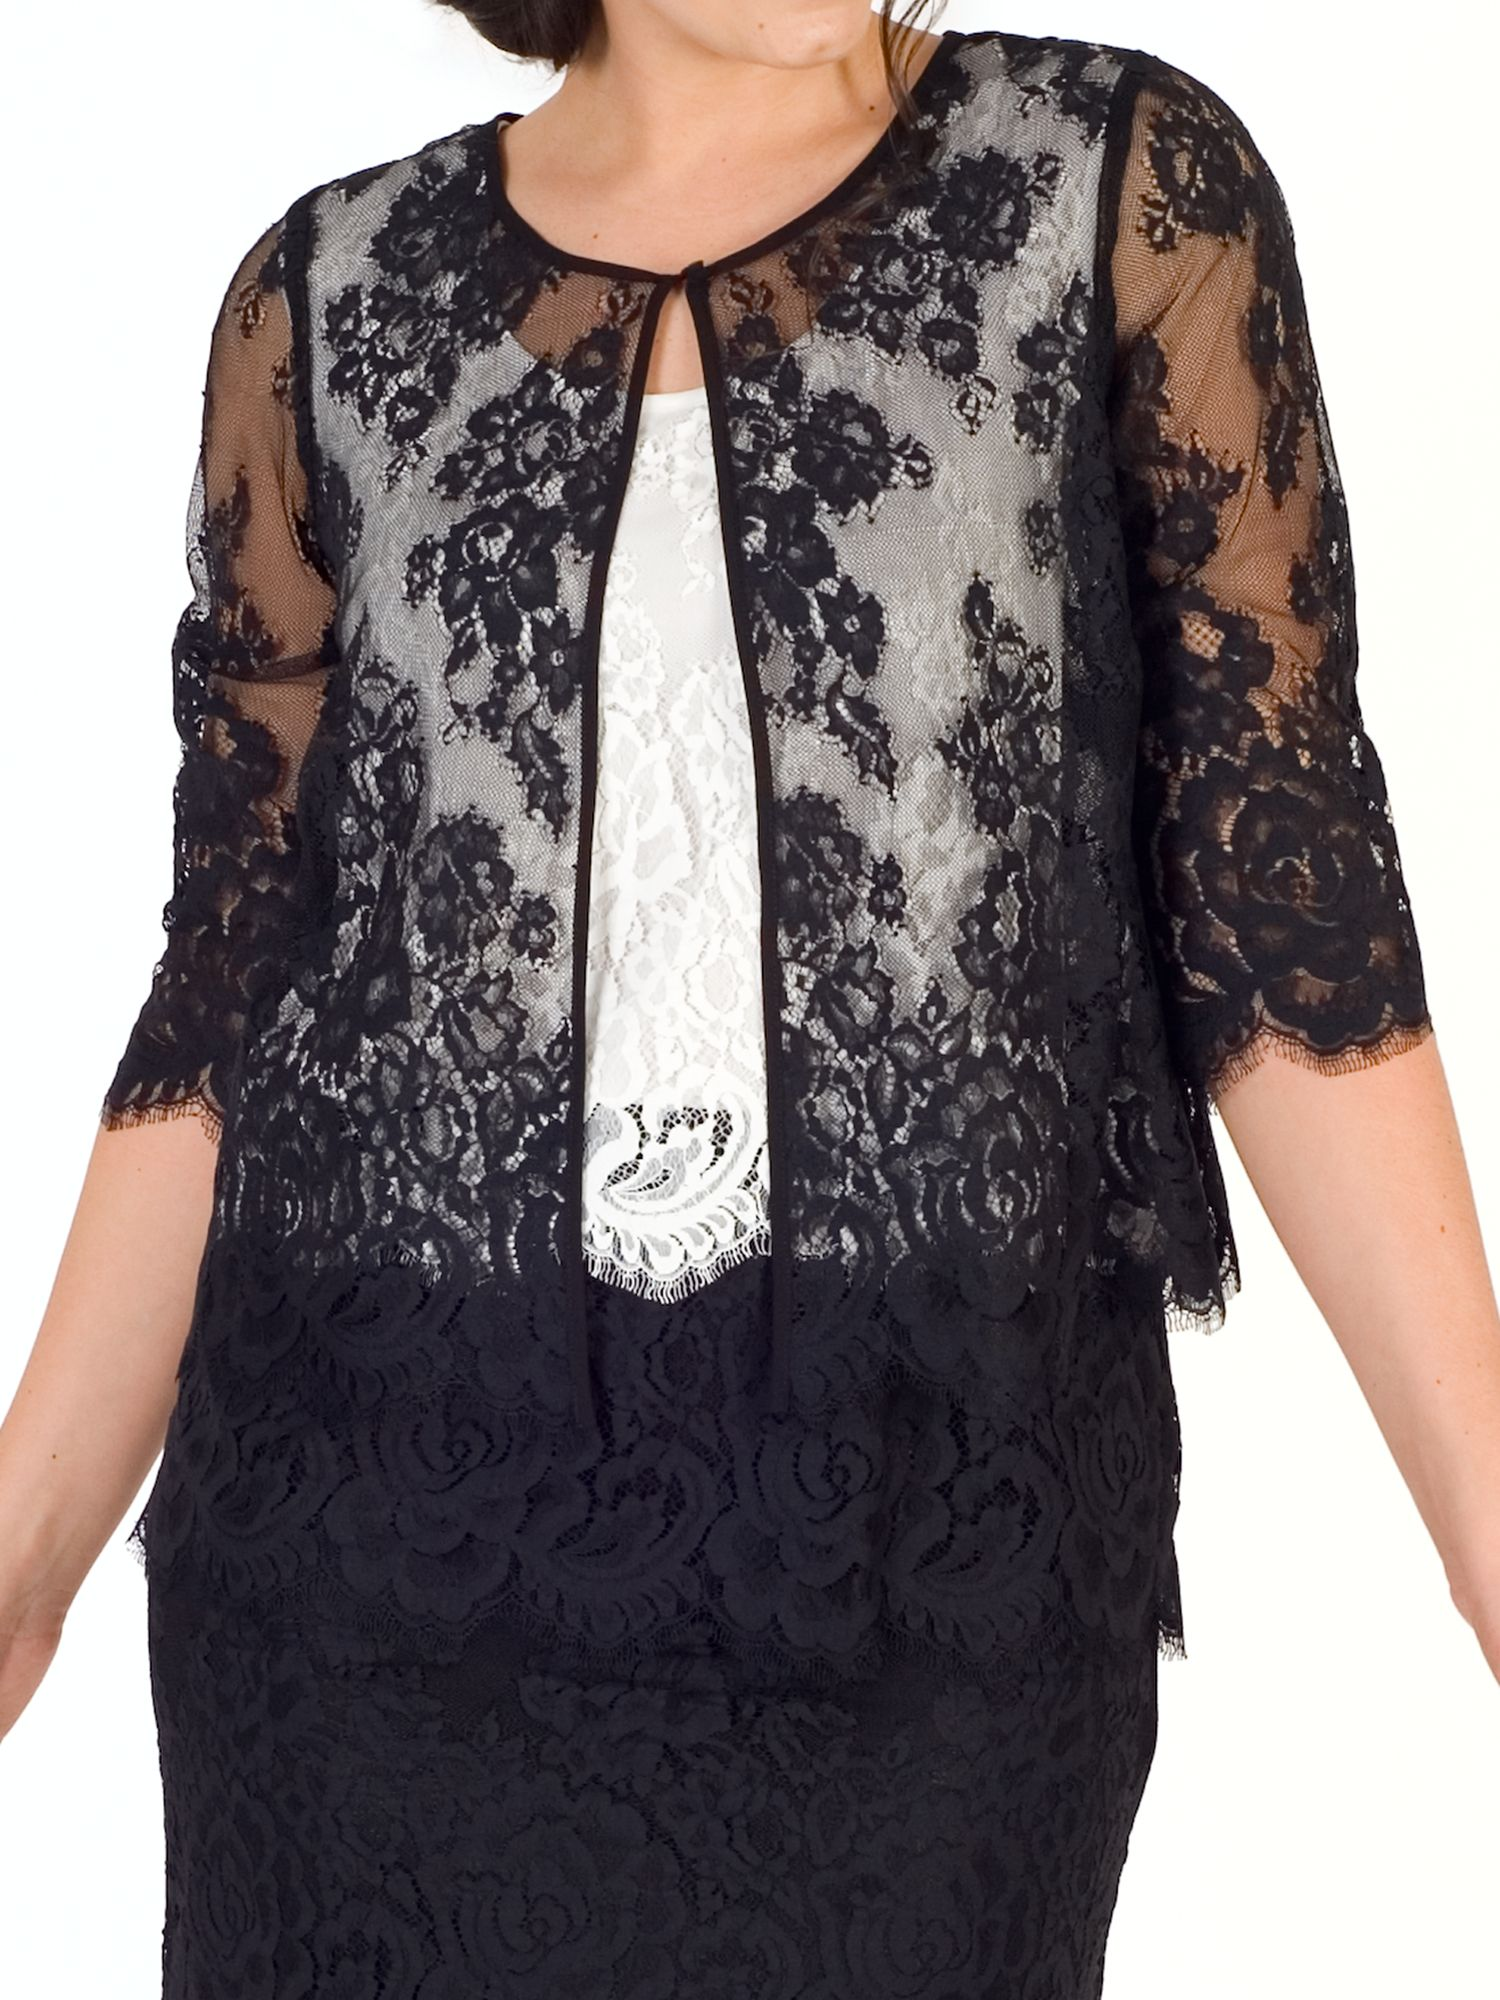 Chesca Chesca Scallop Trim Lace Jacket, Black